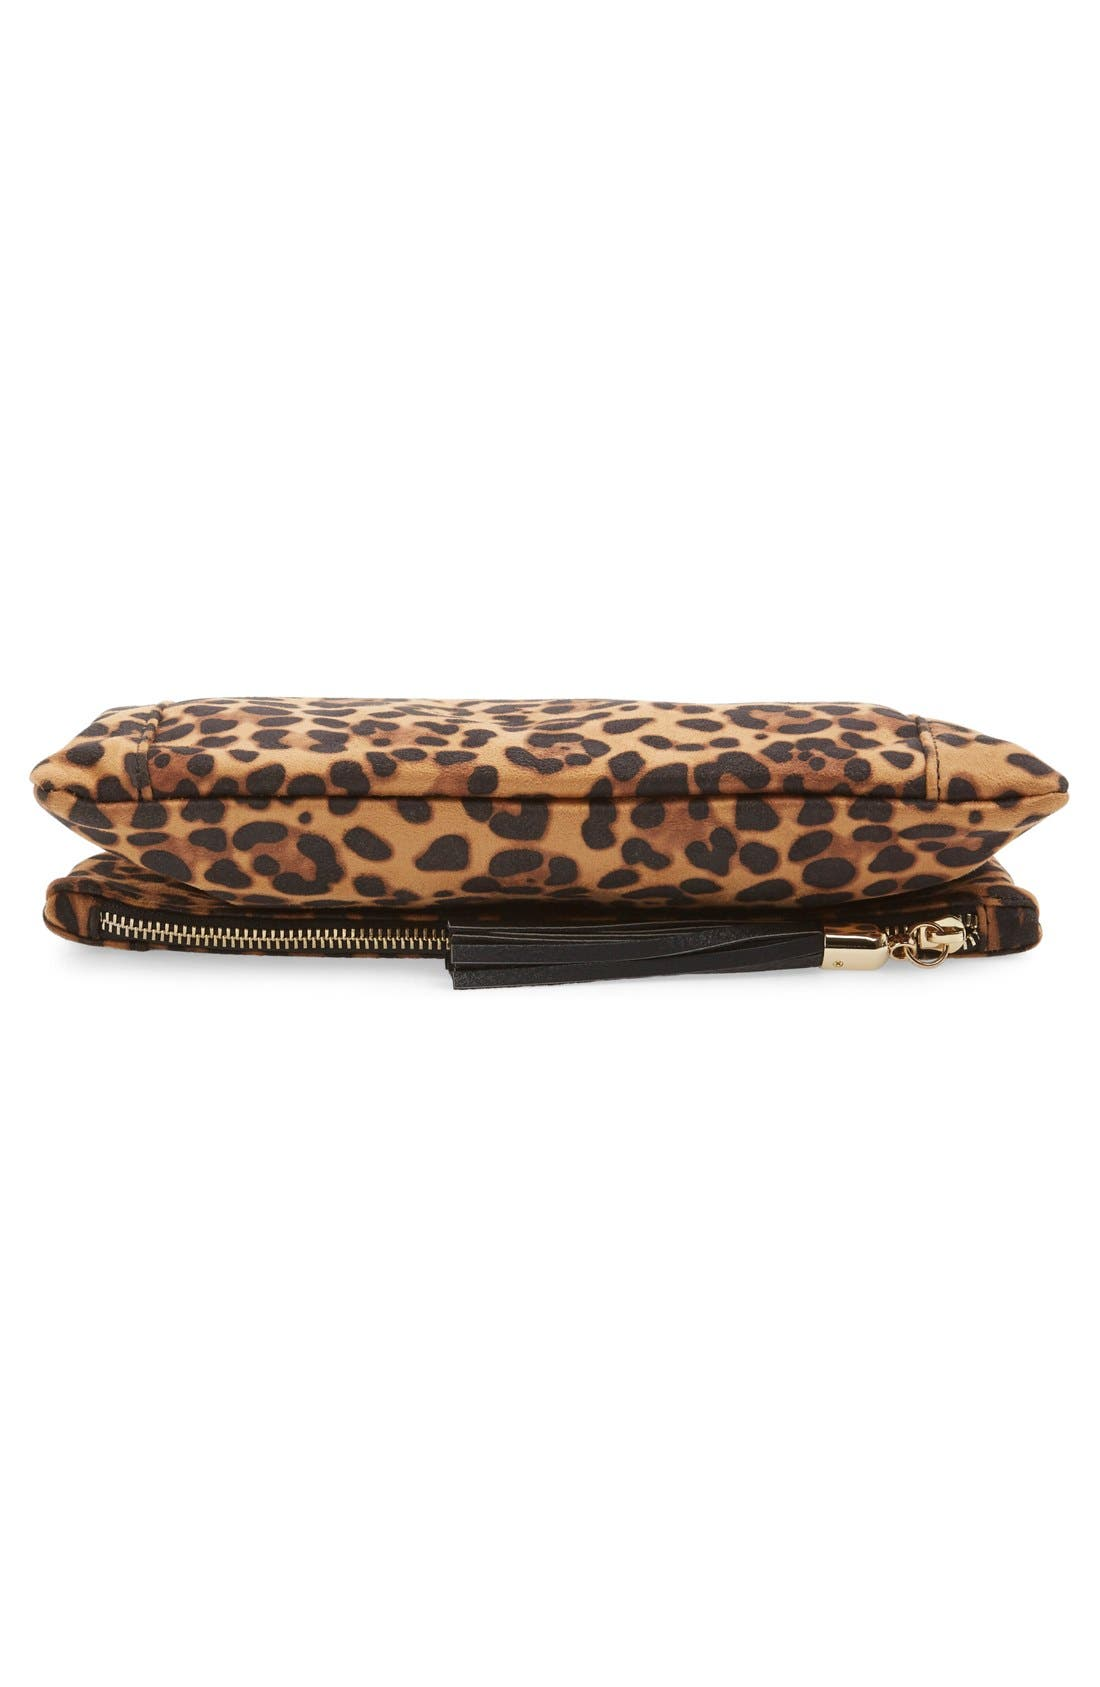 'Tasia' Print Foldover Clutch,                             Alternate thumbnail 12, color,